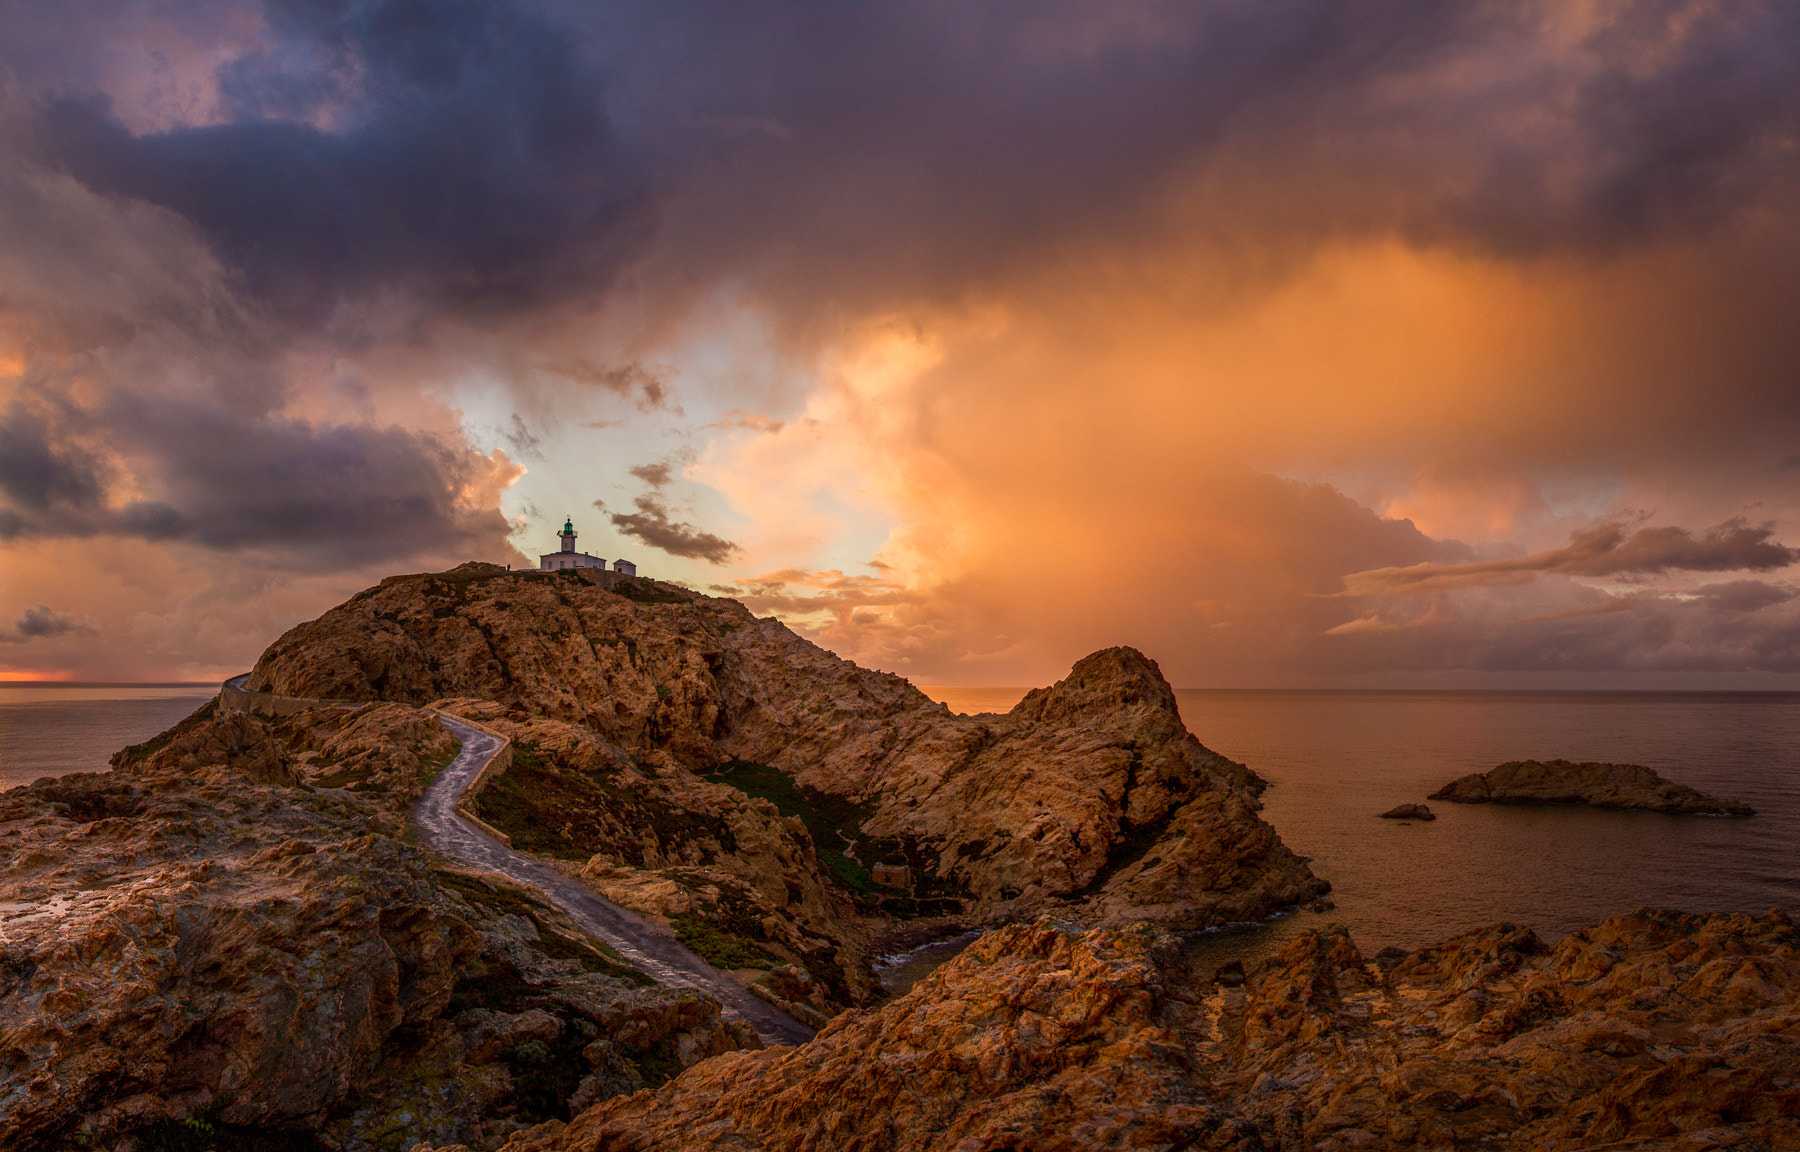 Photograph Ile Rousse Corsica by Ramelli Serge on 500px